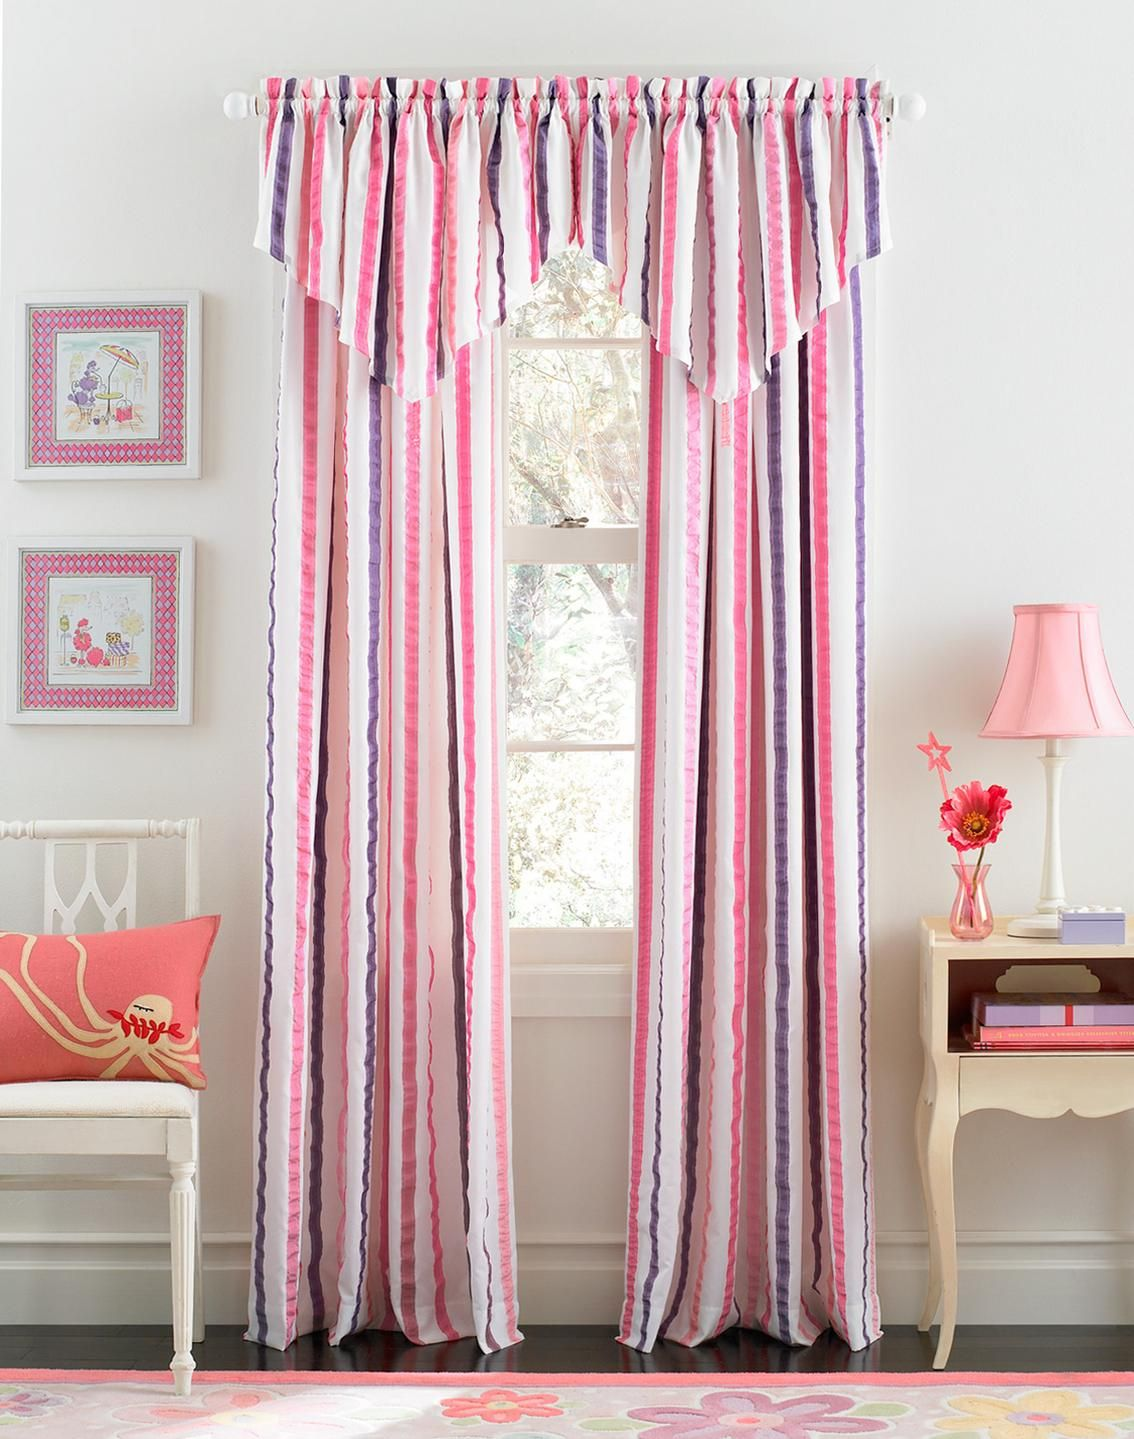 Sweet Bedroom Designs With Pink Curtain For Girls Fetching White Purple